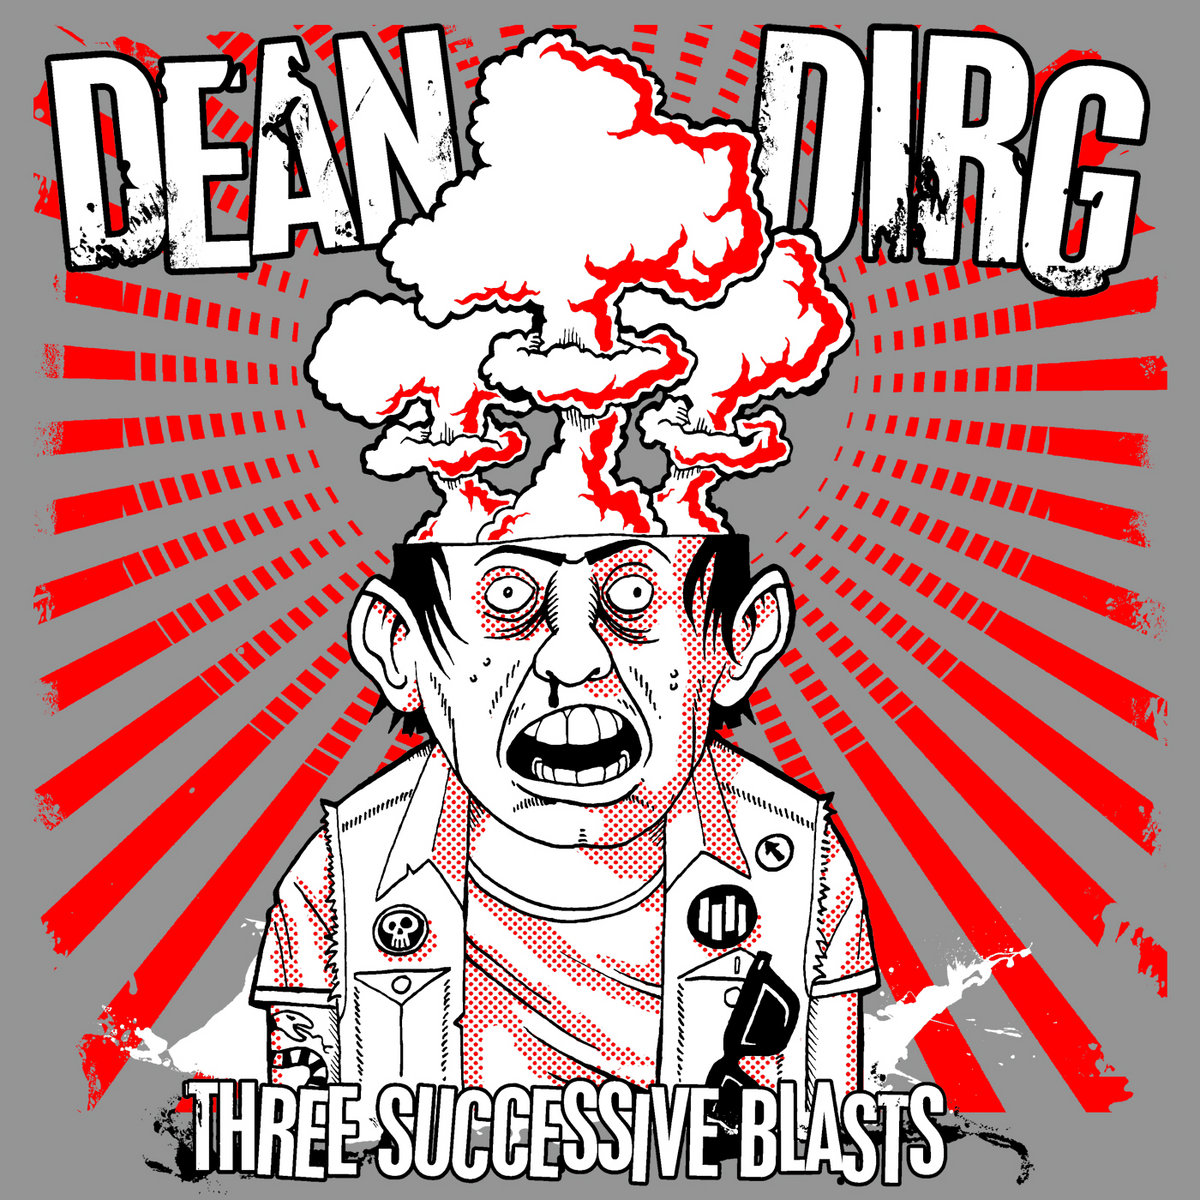 From Sfu008 Dean Dirg Three Successive Blasts By Six Feet Under Records